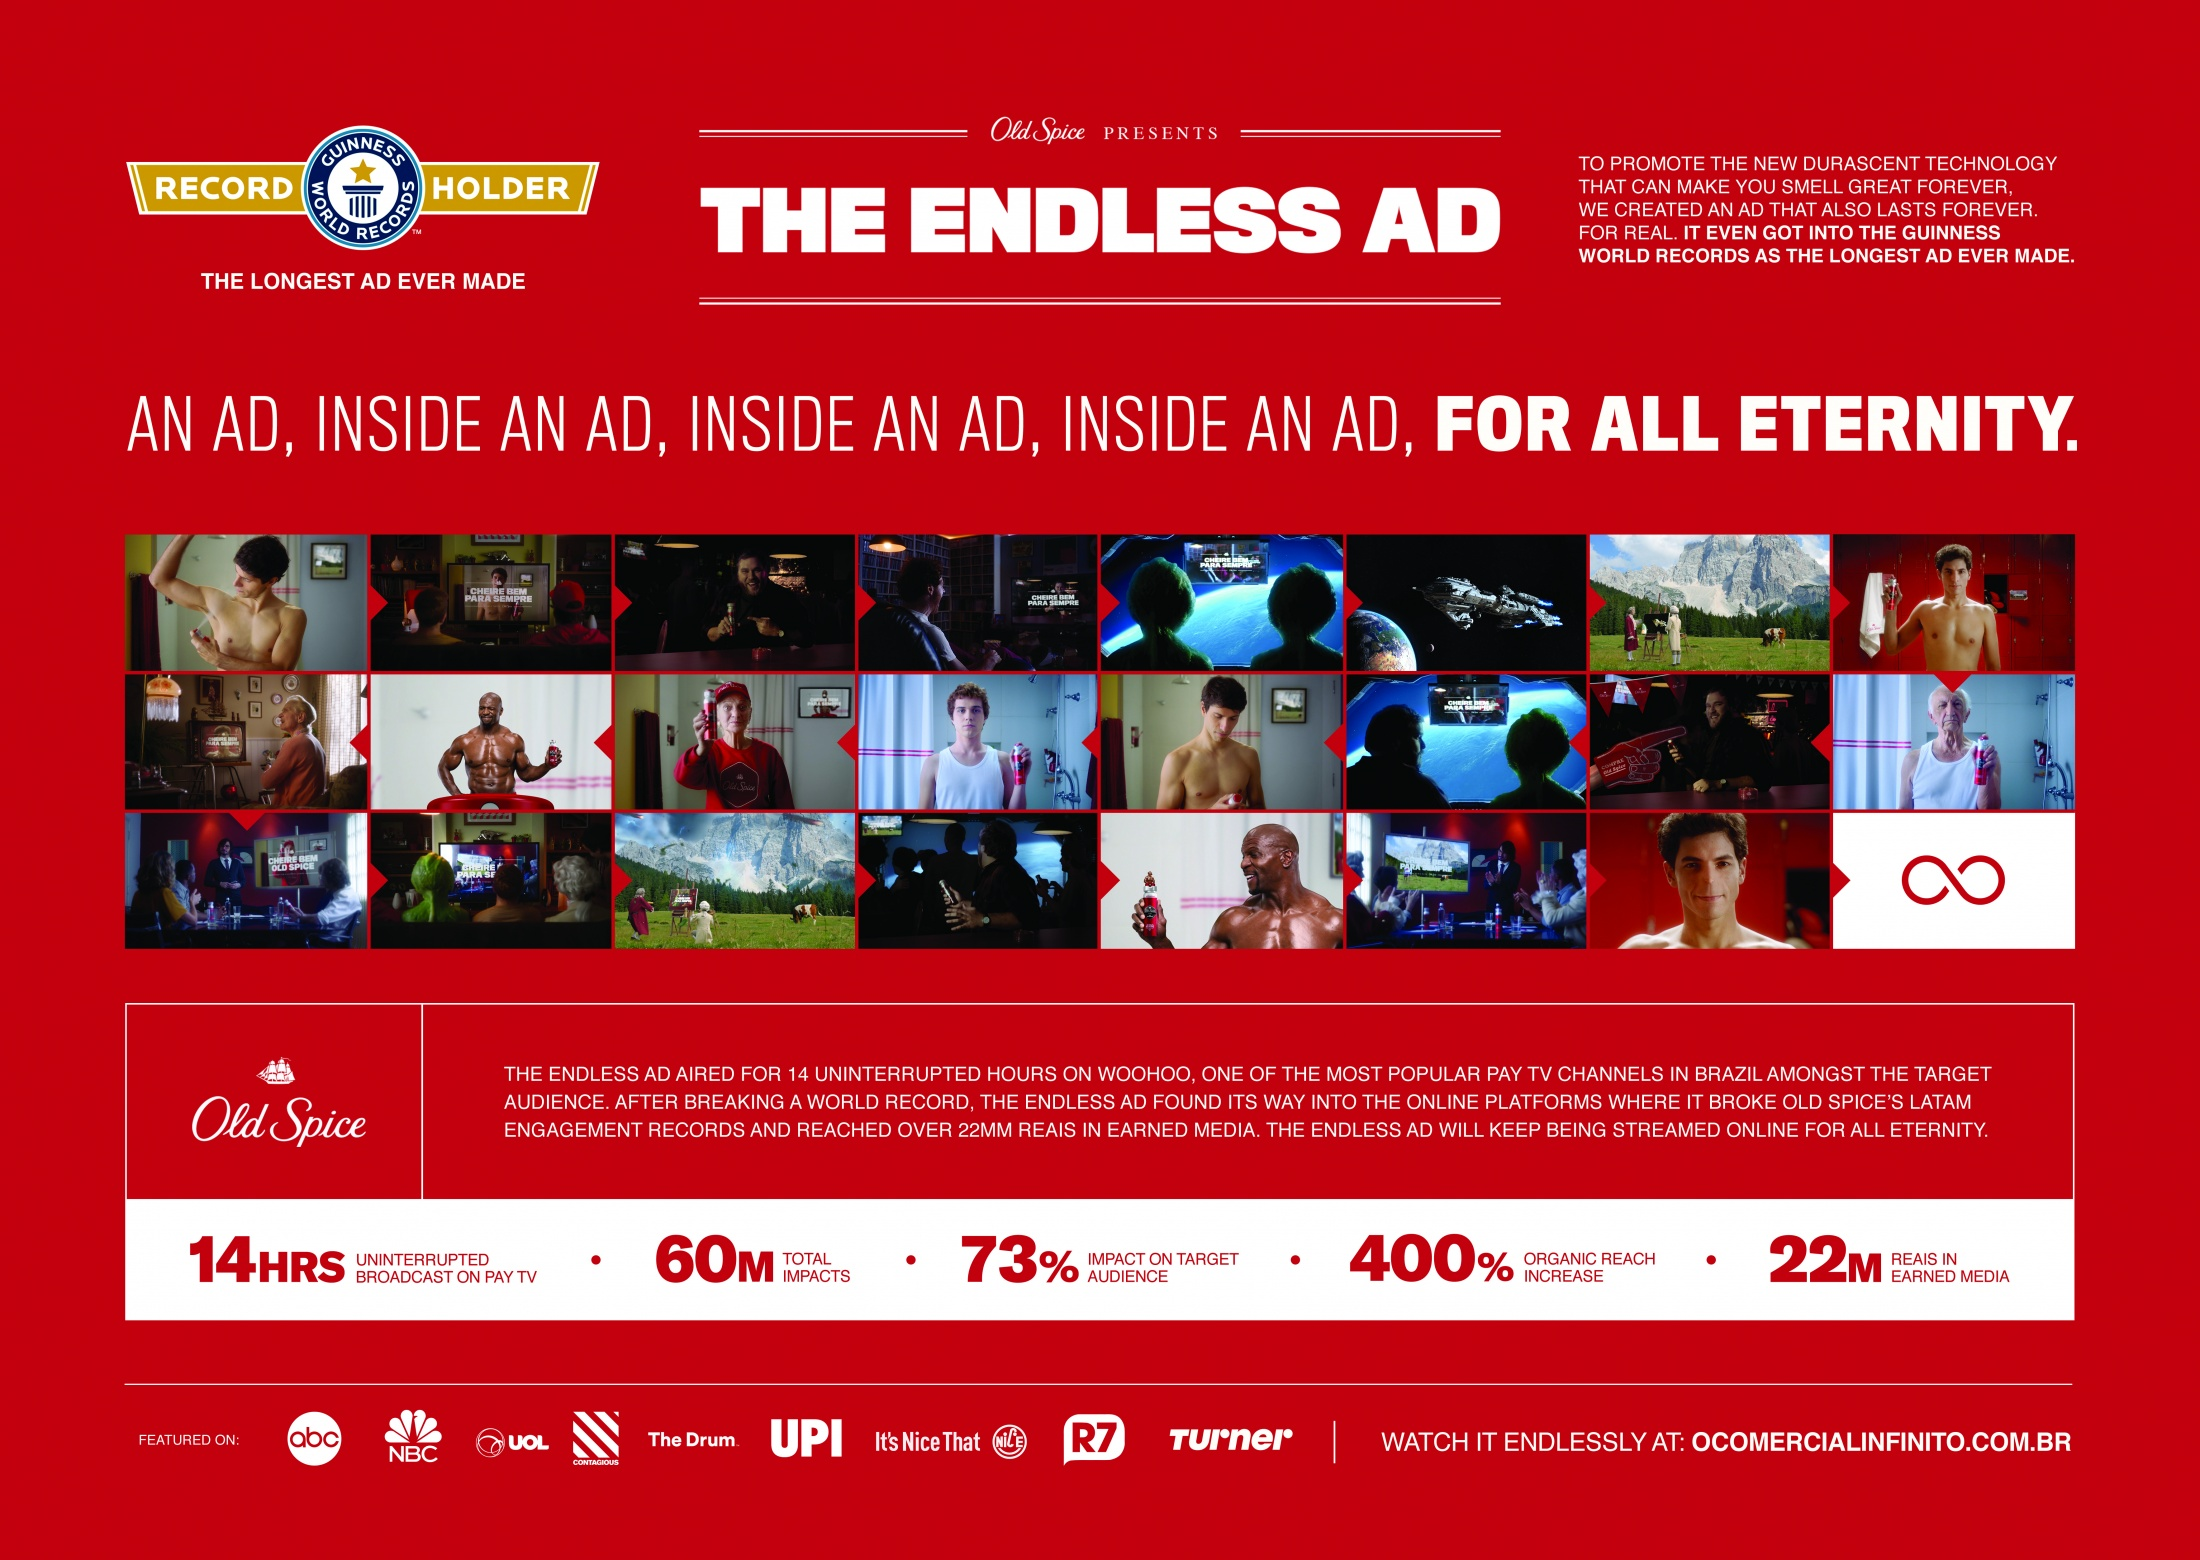 Thumbnail for The Endless Ad